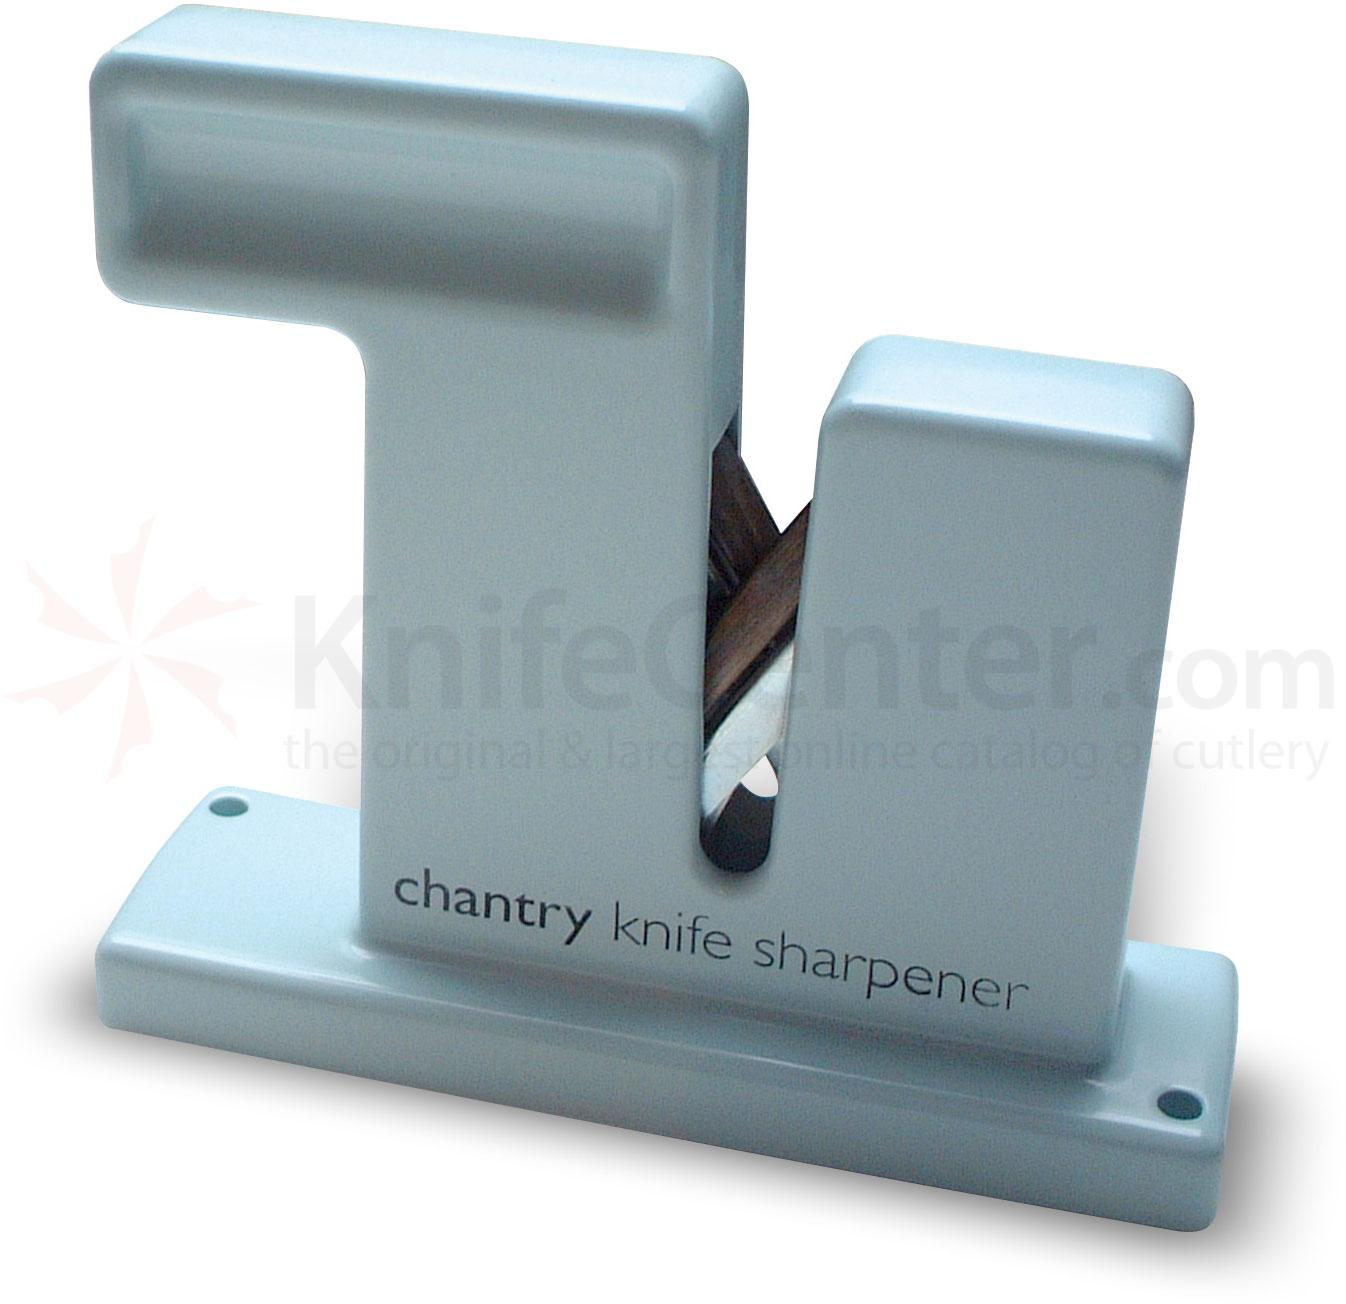 Messermeister Chantry Sharpener, Light Blue